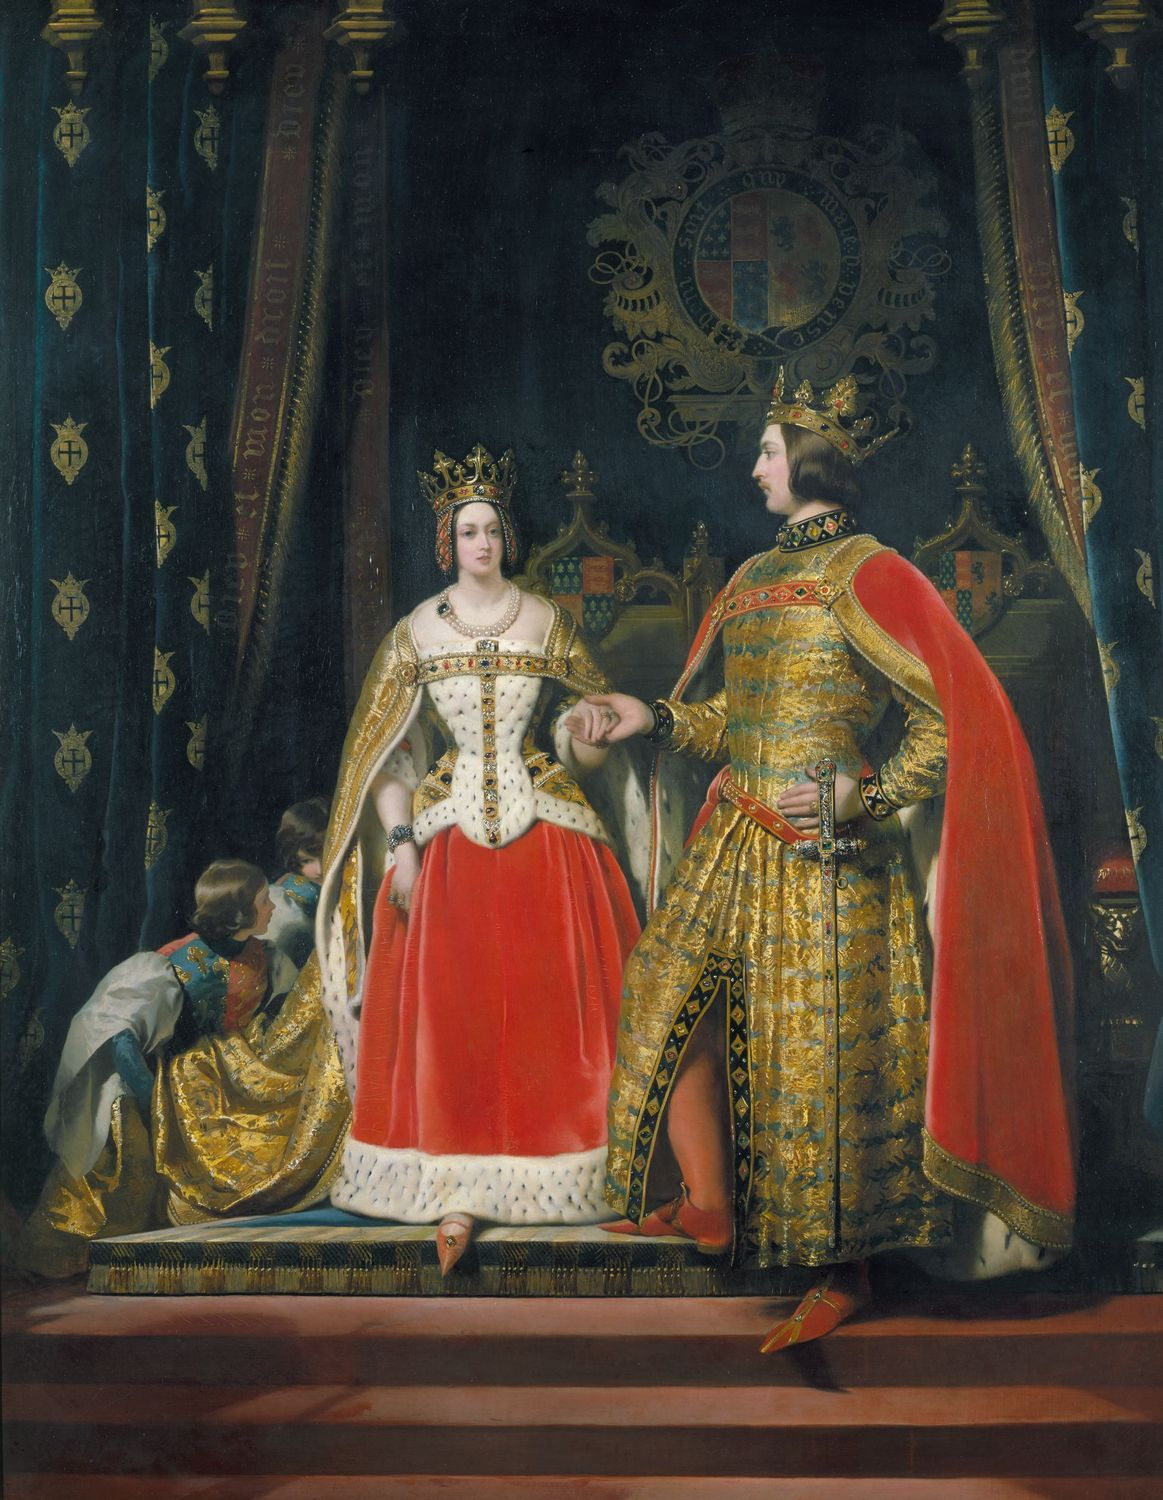 Painting of Queen Victoria and Prince Albert as Edward III and Philippa of Hainault